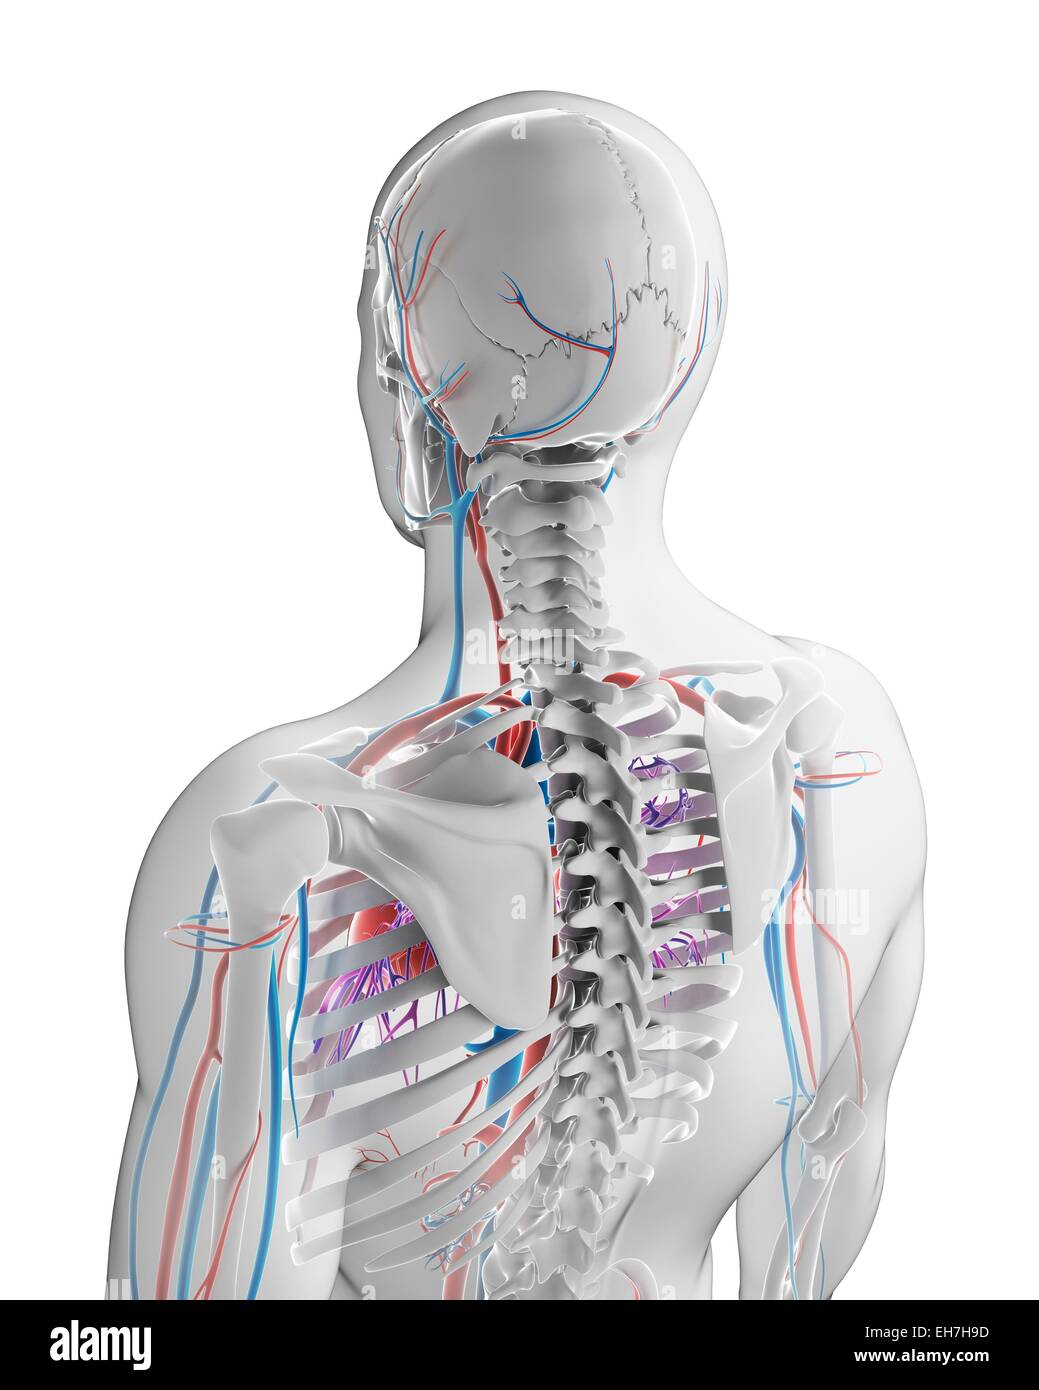 Human Vascular Neck Computer Illustration Stock Photos & Human ...